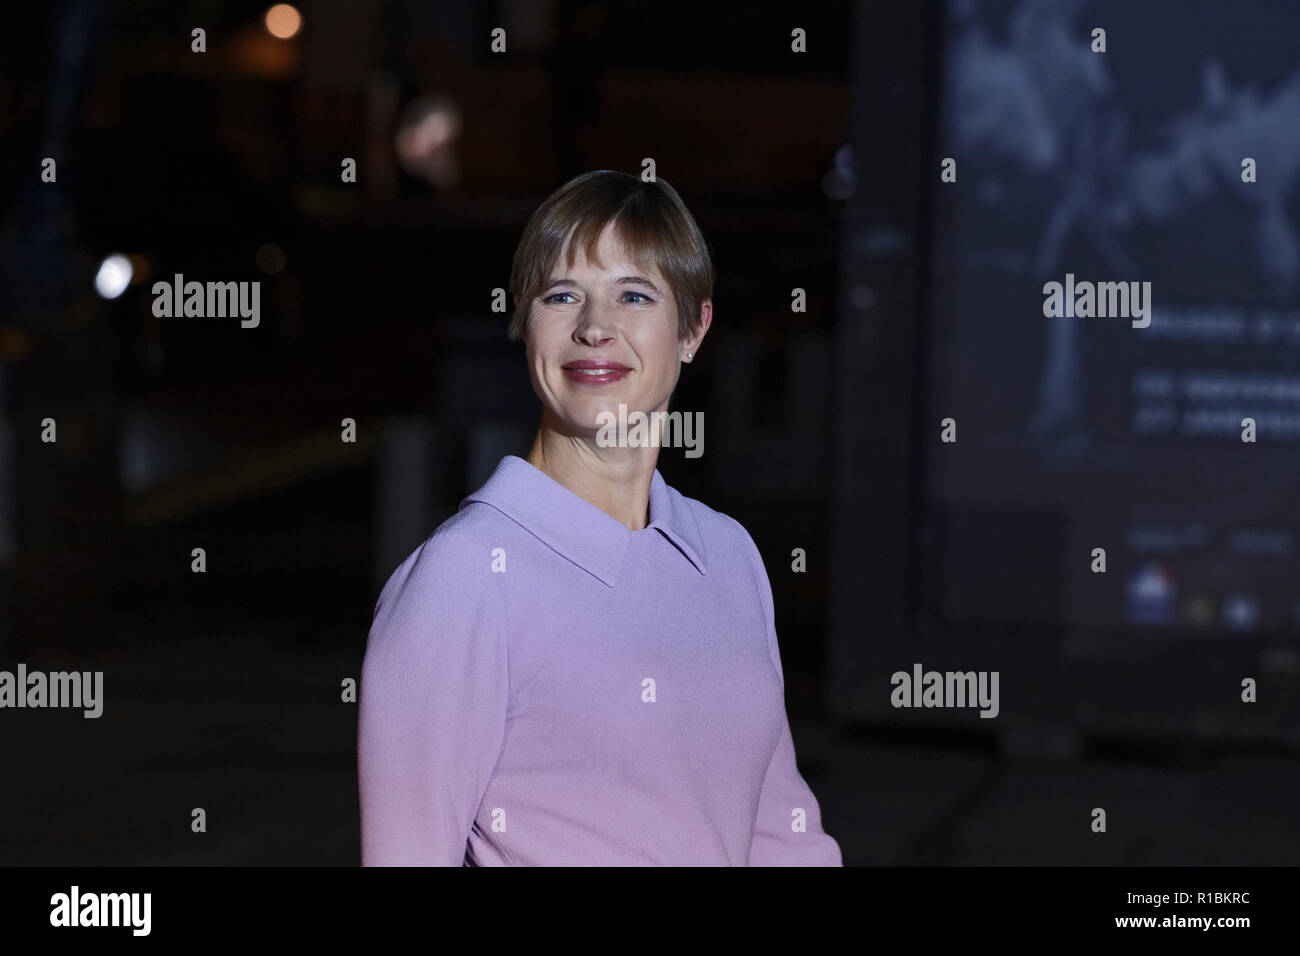 Paris, France. 10th Nov, 2018. Arrival of President of the Republic of Estonia Kersti Kaljulaid for dinner in the presence of the heads of state, government and international organization leaders during the international commemoration of the centenary of the 1918 armistice at the Musée d'Orsay in Paris on November 10, 2018 in Paris, France. Credit: Bernard Menigault/Alamy Live News Stock Photo